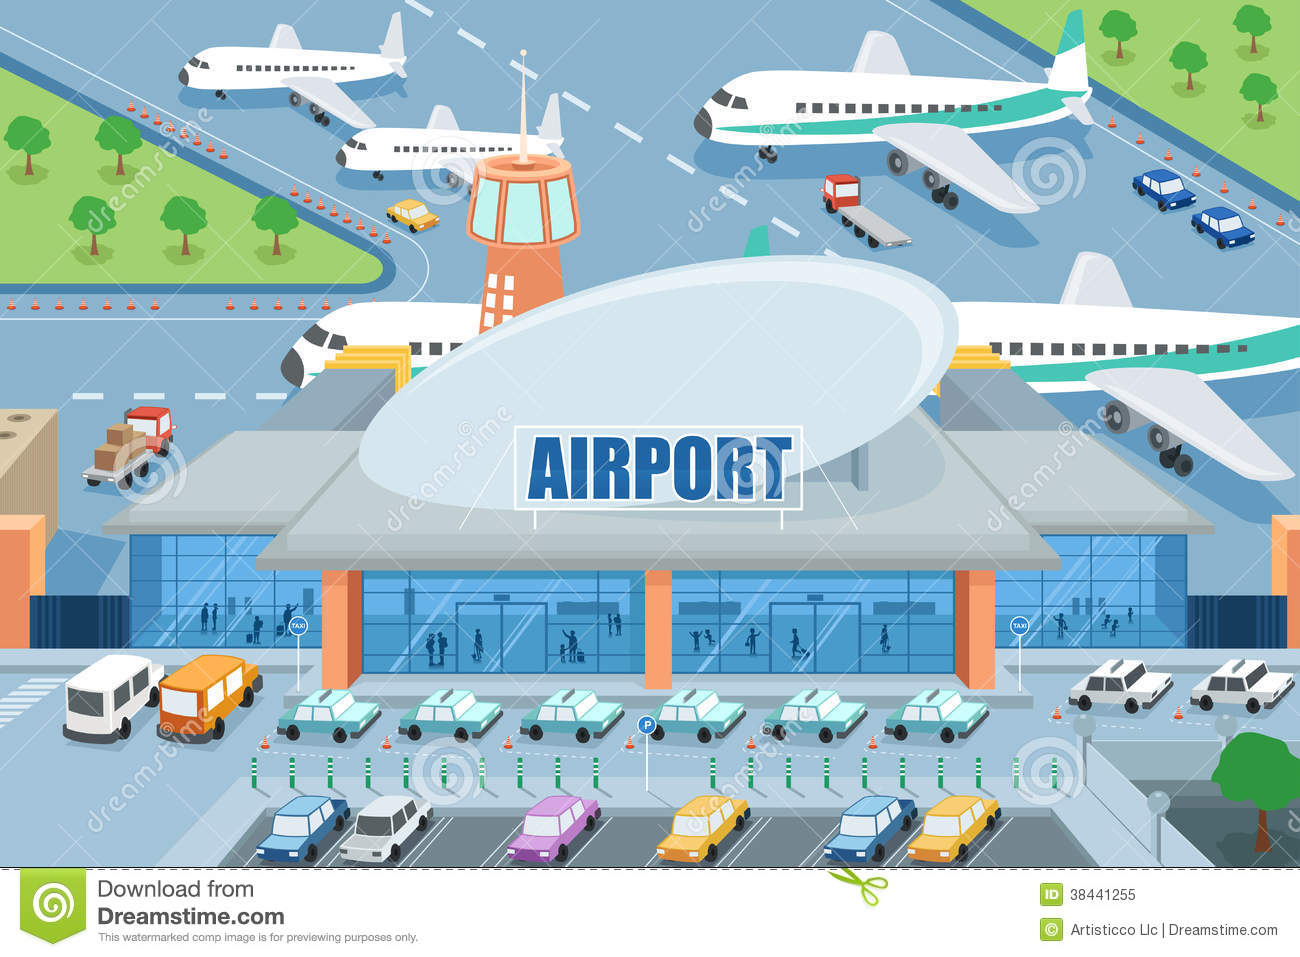 Airport clipart #4